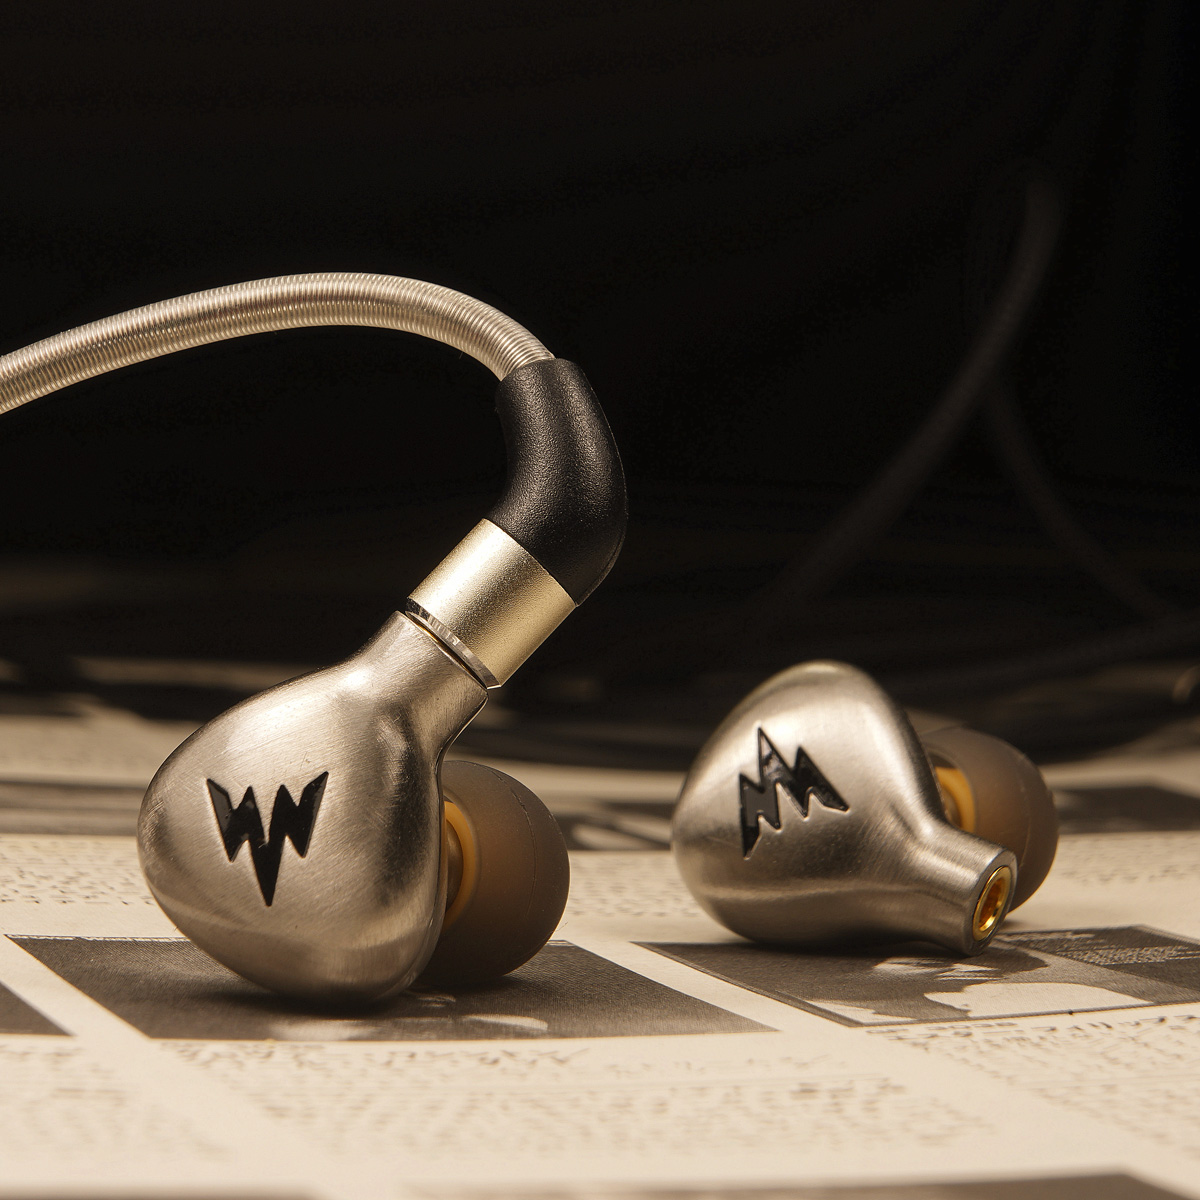 Whizzer/Weize A15 hifi headphones with ear-in earplugs are balanced and durable